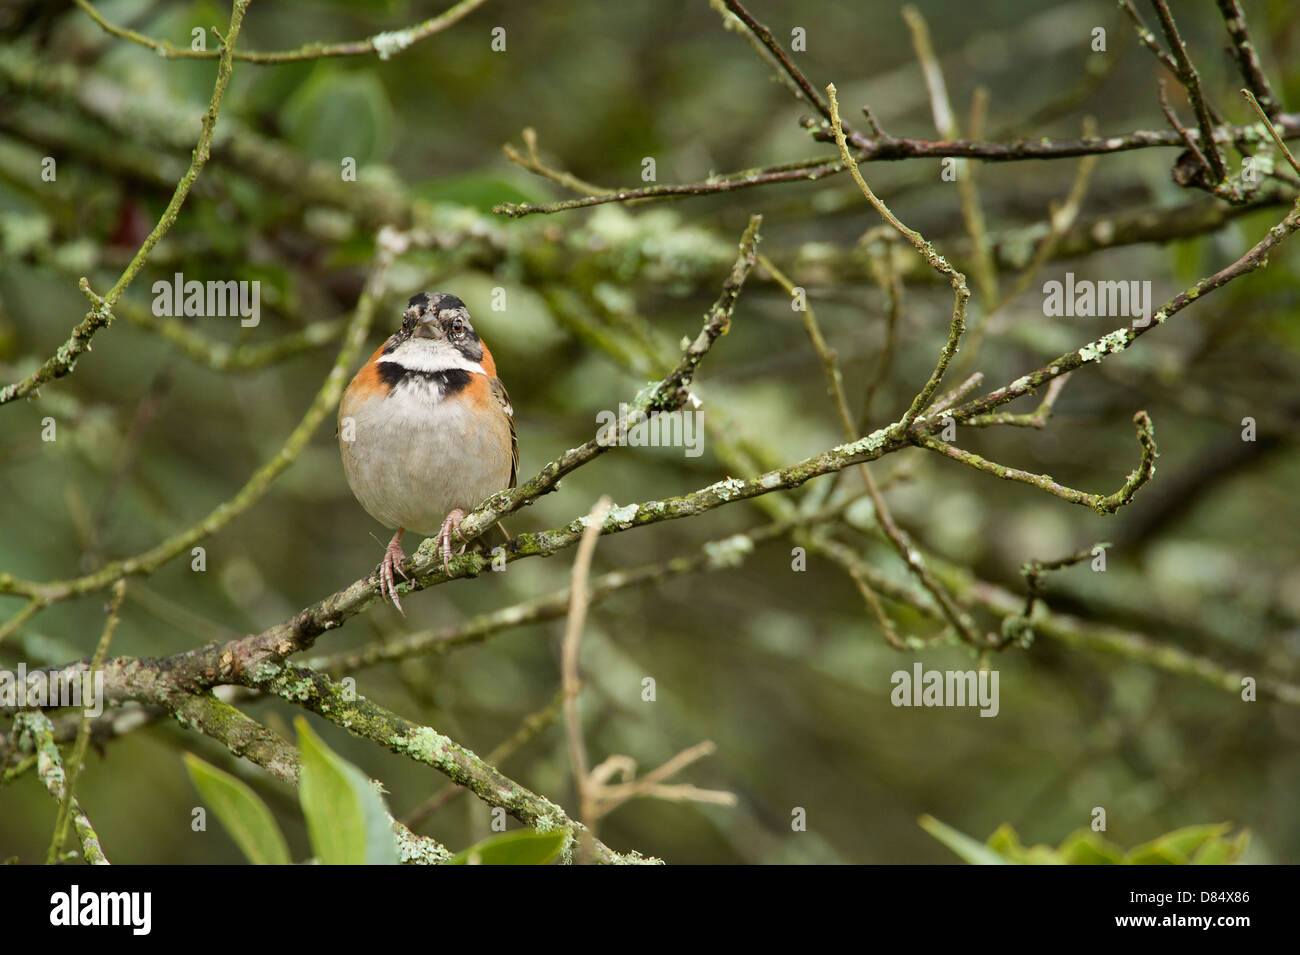 Rufous-collared Sparrow perched on a branch in Costa Rica, Central America Stock Photo